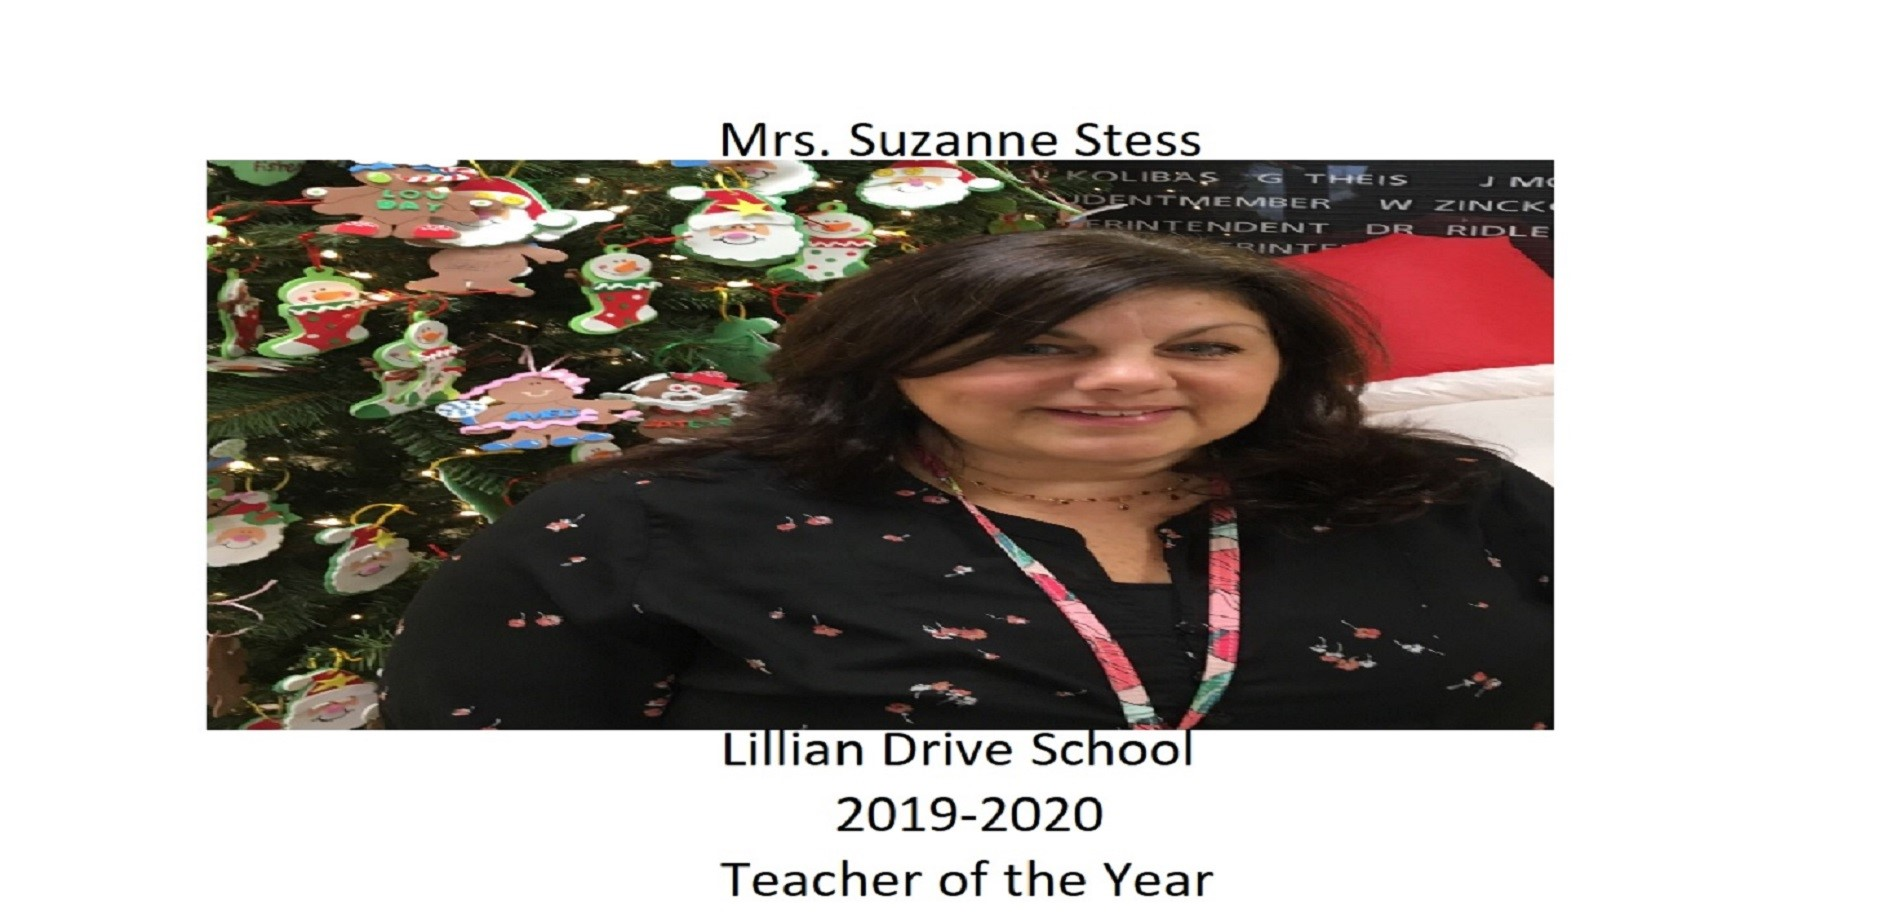 Lillian Drive School Teacher of the Year 2019-2020 Mrs. Suzanne Stess